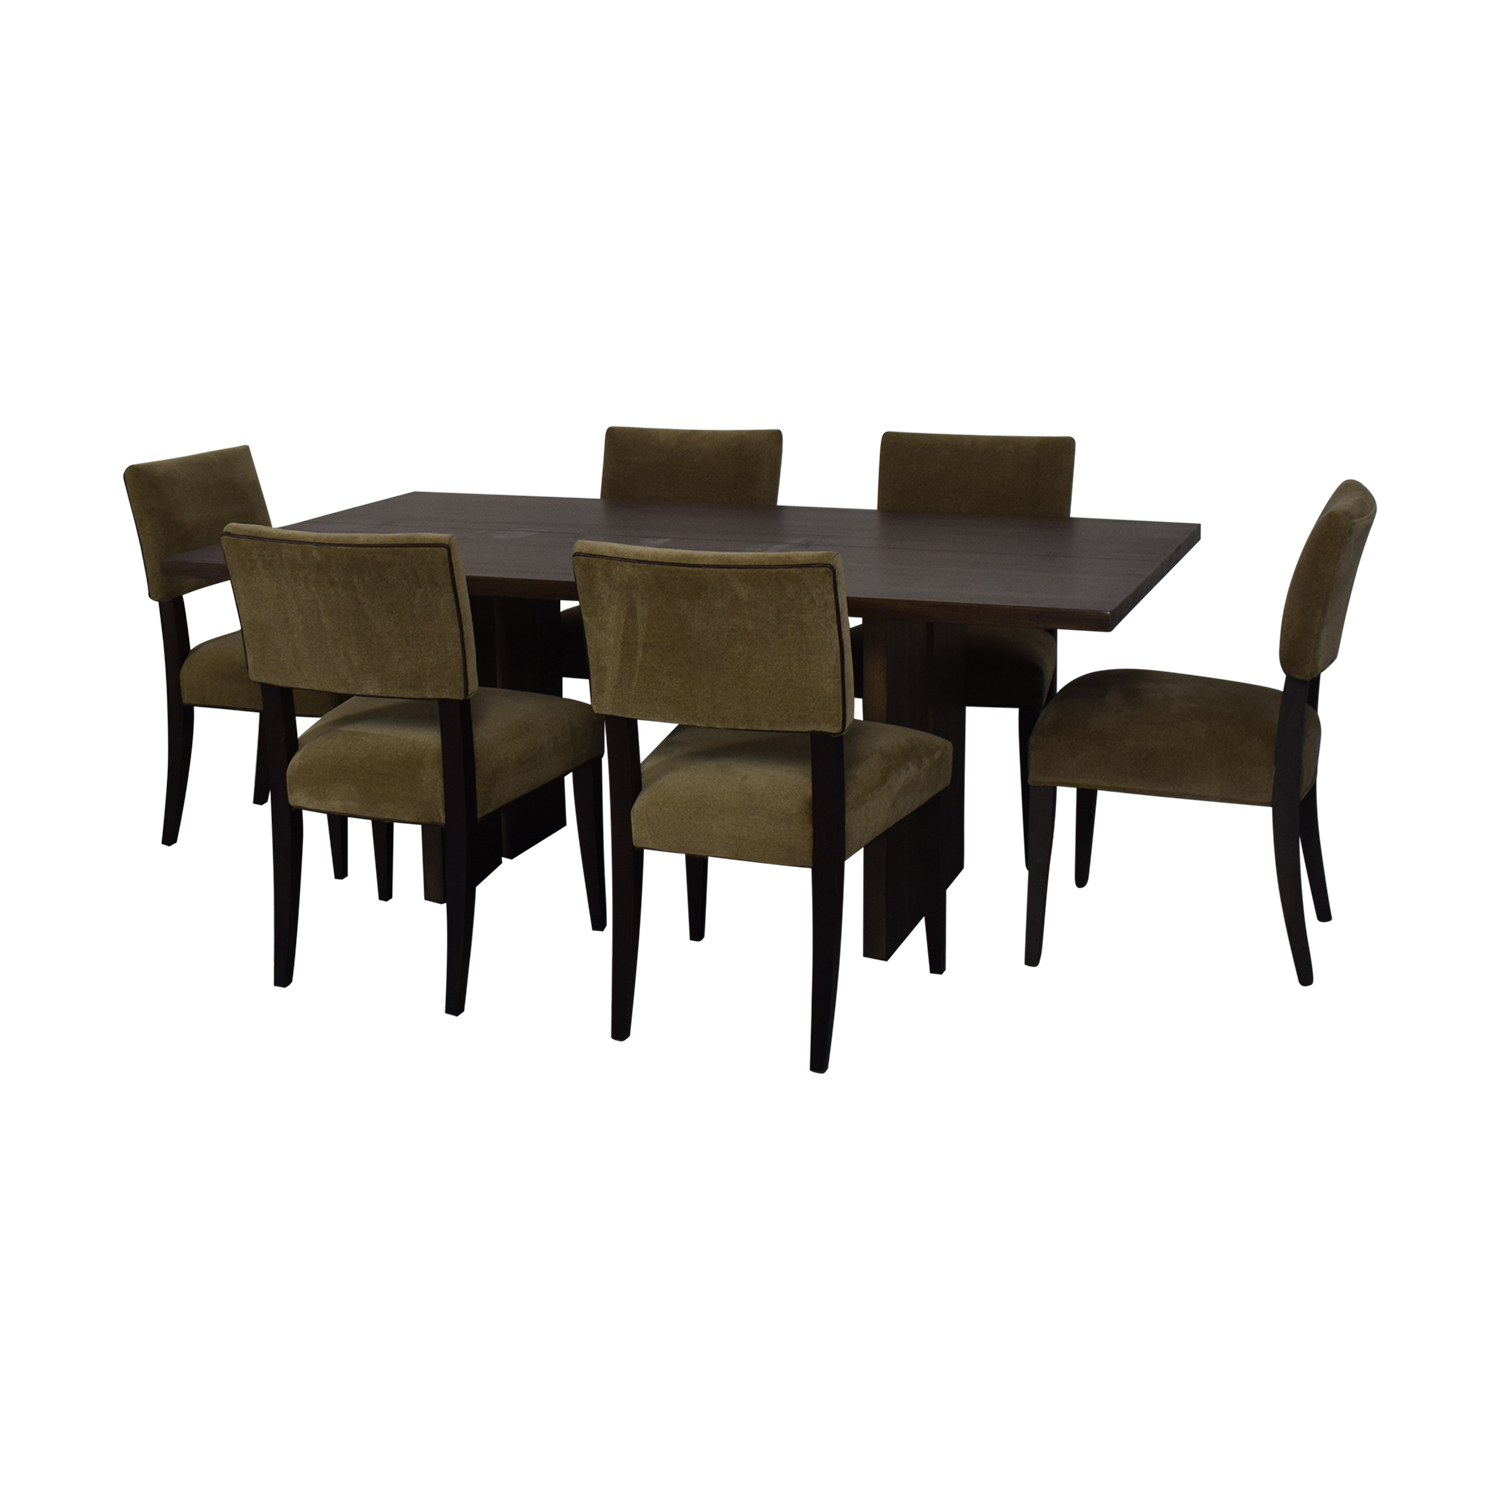 Crate & Barrel Monarch Dining Table and Cody Dining Chairs Crate & Barrel